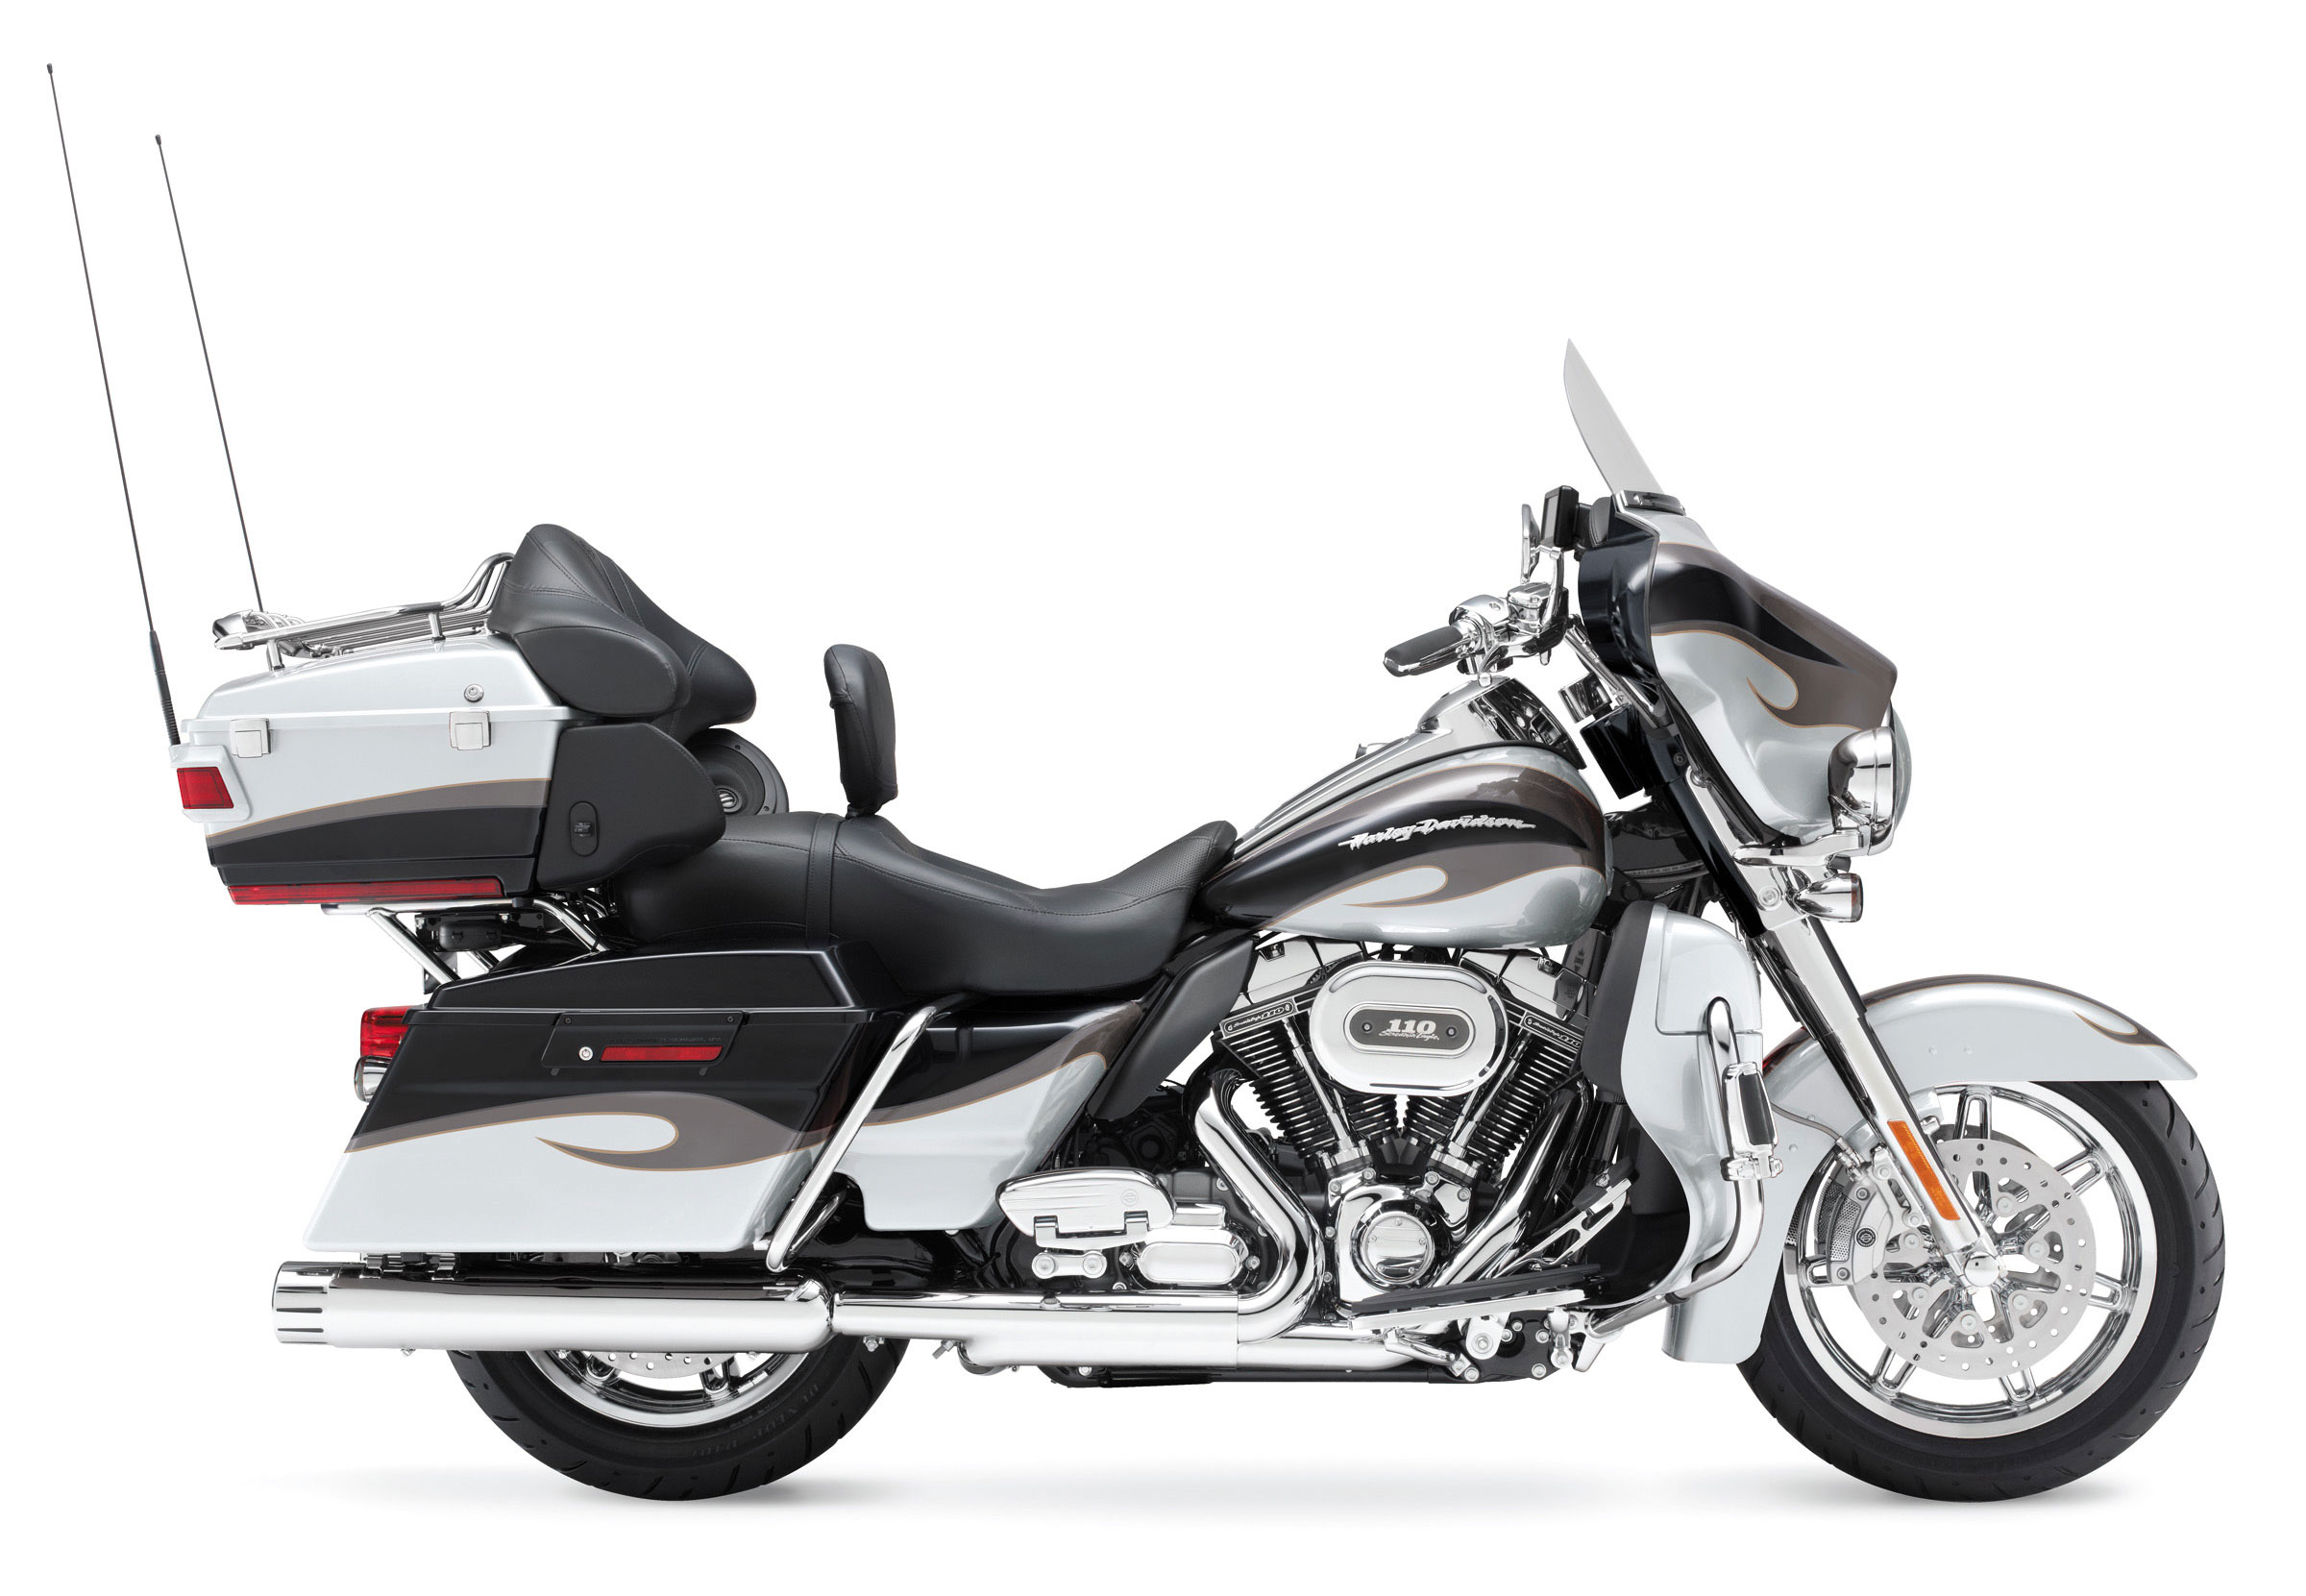 Harley Davidson Th Anniversary Ultra Classic Specs